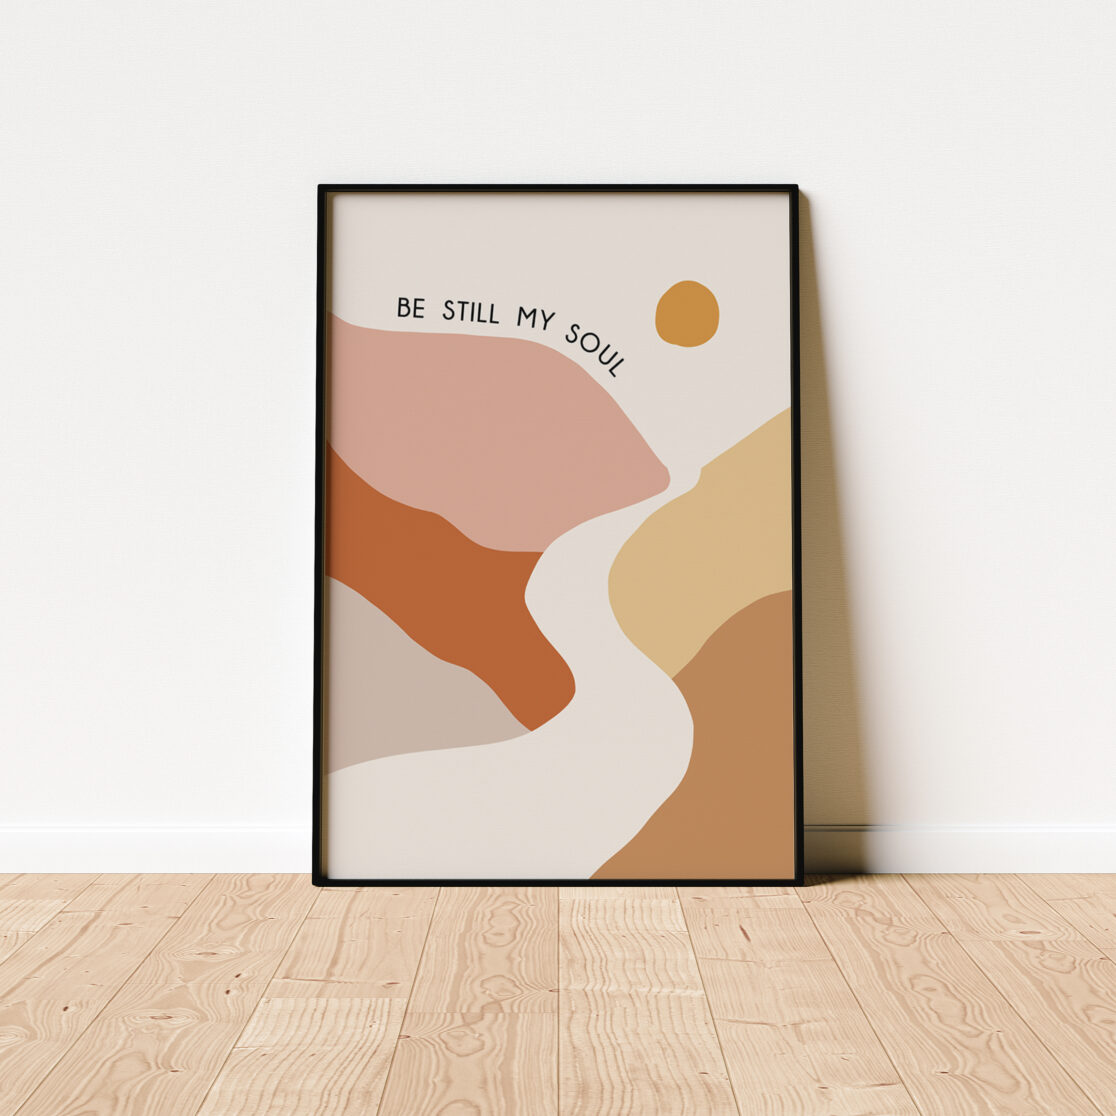 Be Still My Soul Poster on Ground